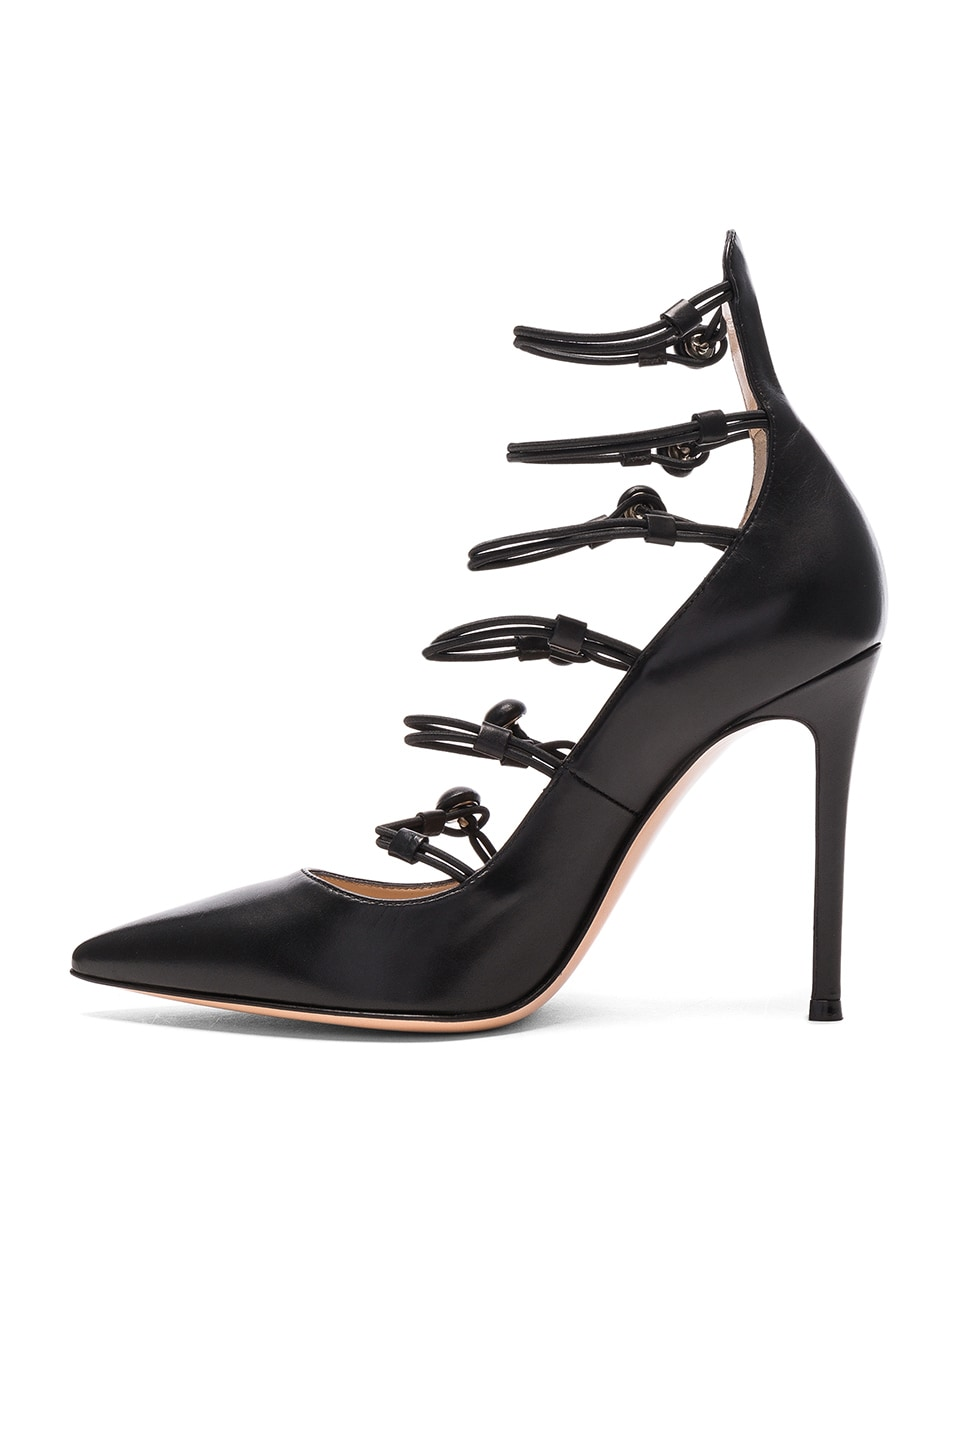 Image 5 of Gianvito Rossi Leather Strap Sandals in Black